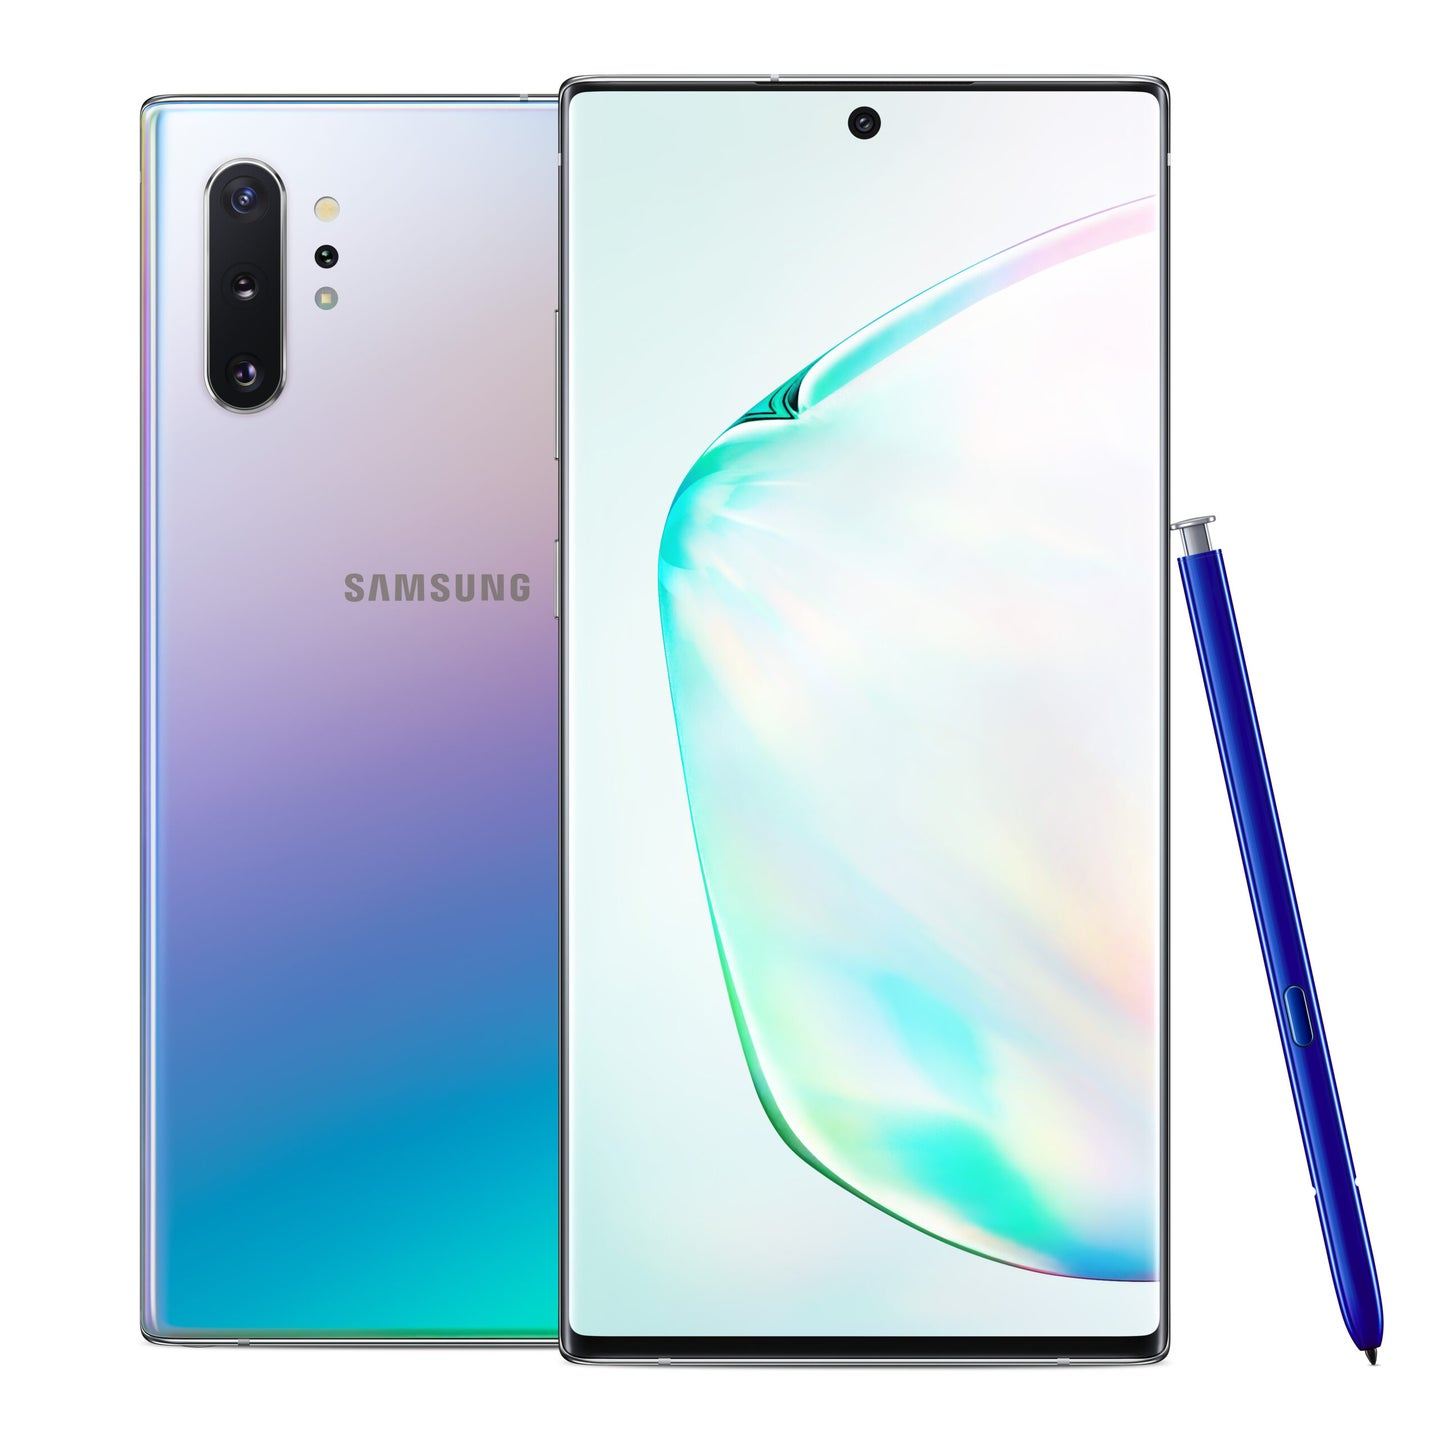 What to know about the new Samsung Galaxy Note10 and Note10+